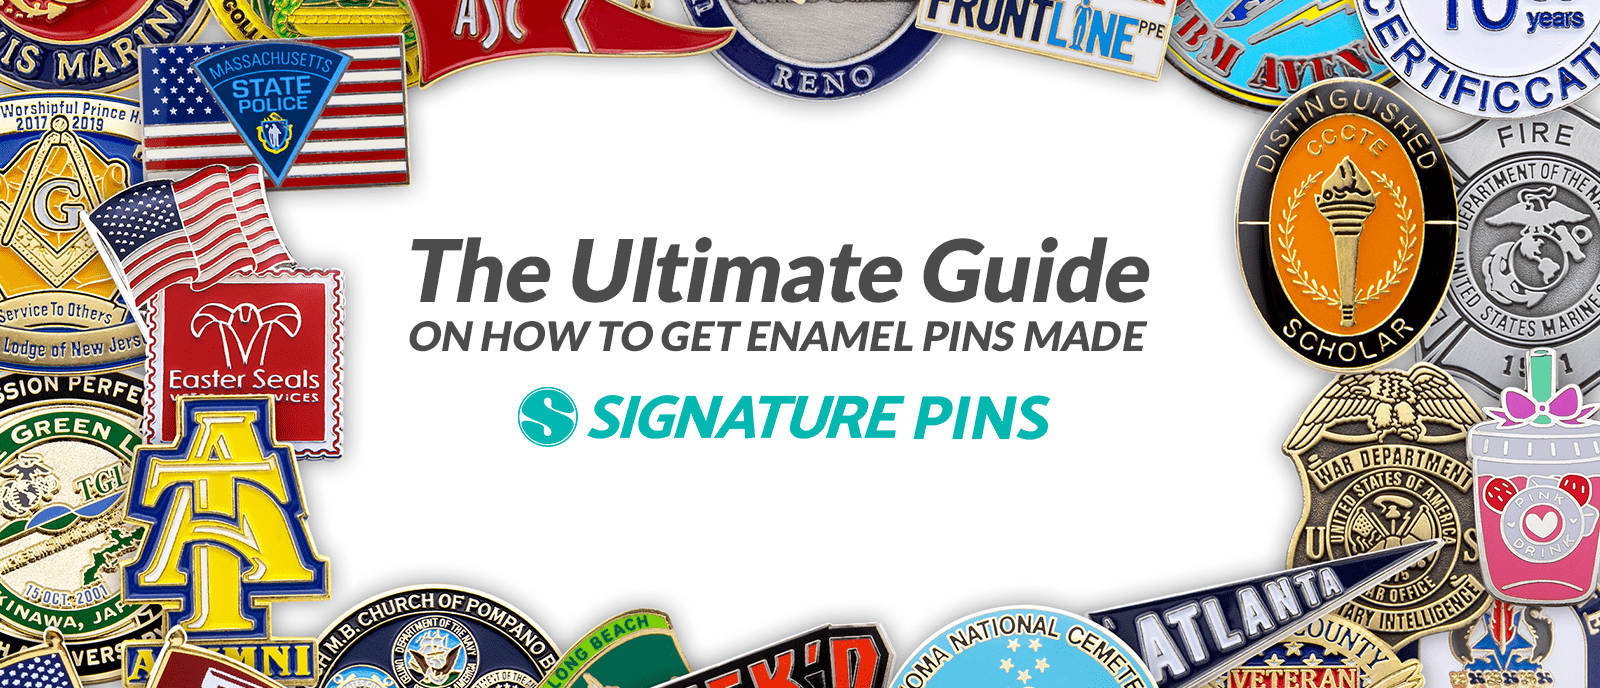 /How-to-Get-Enamel-Pins-Made